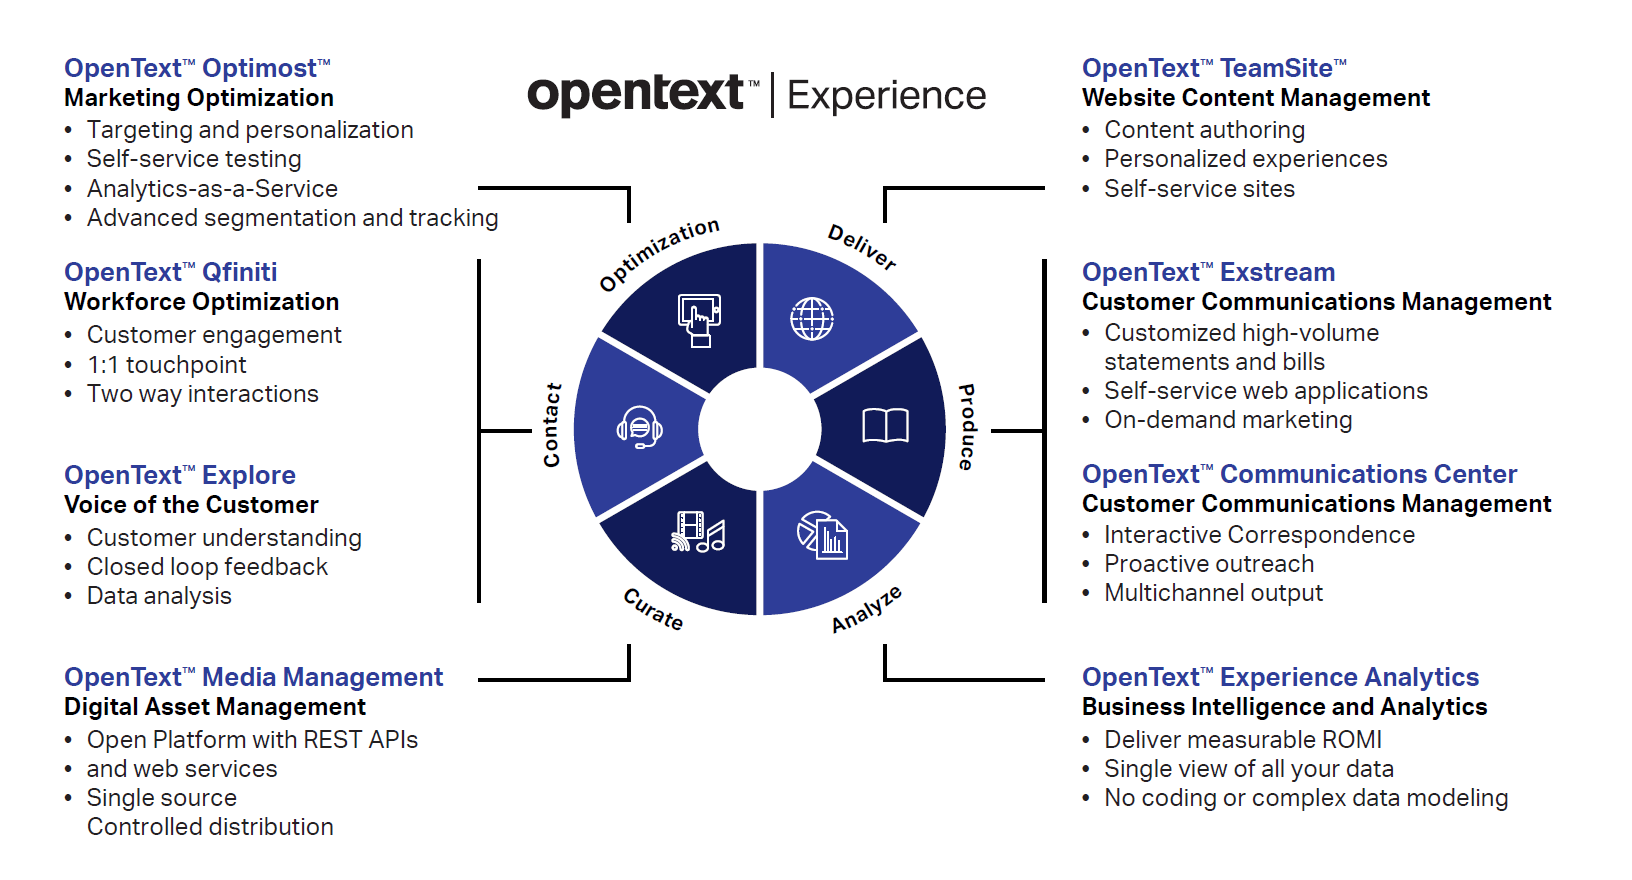 exstream experience products